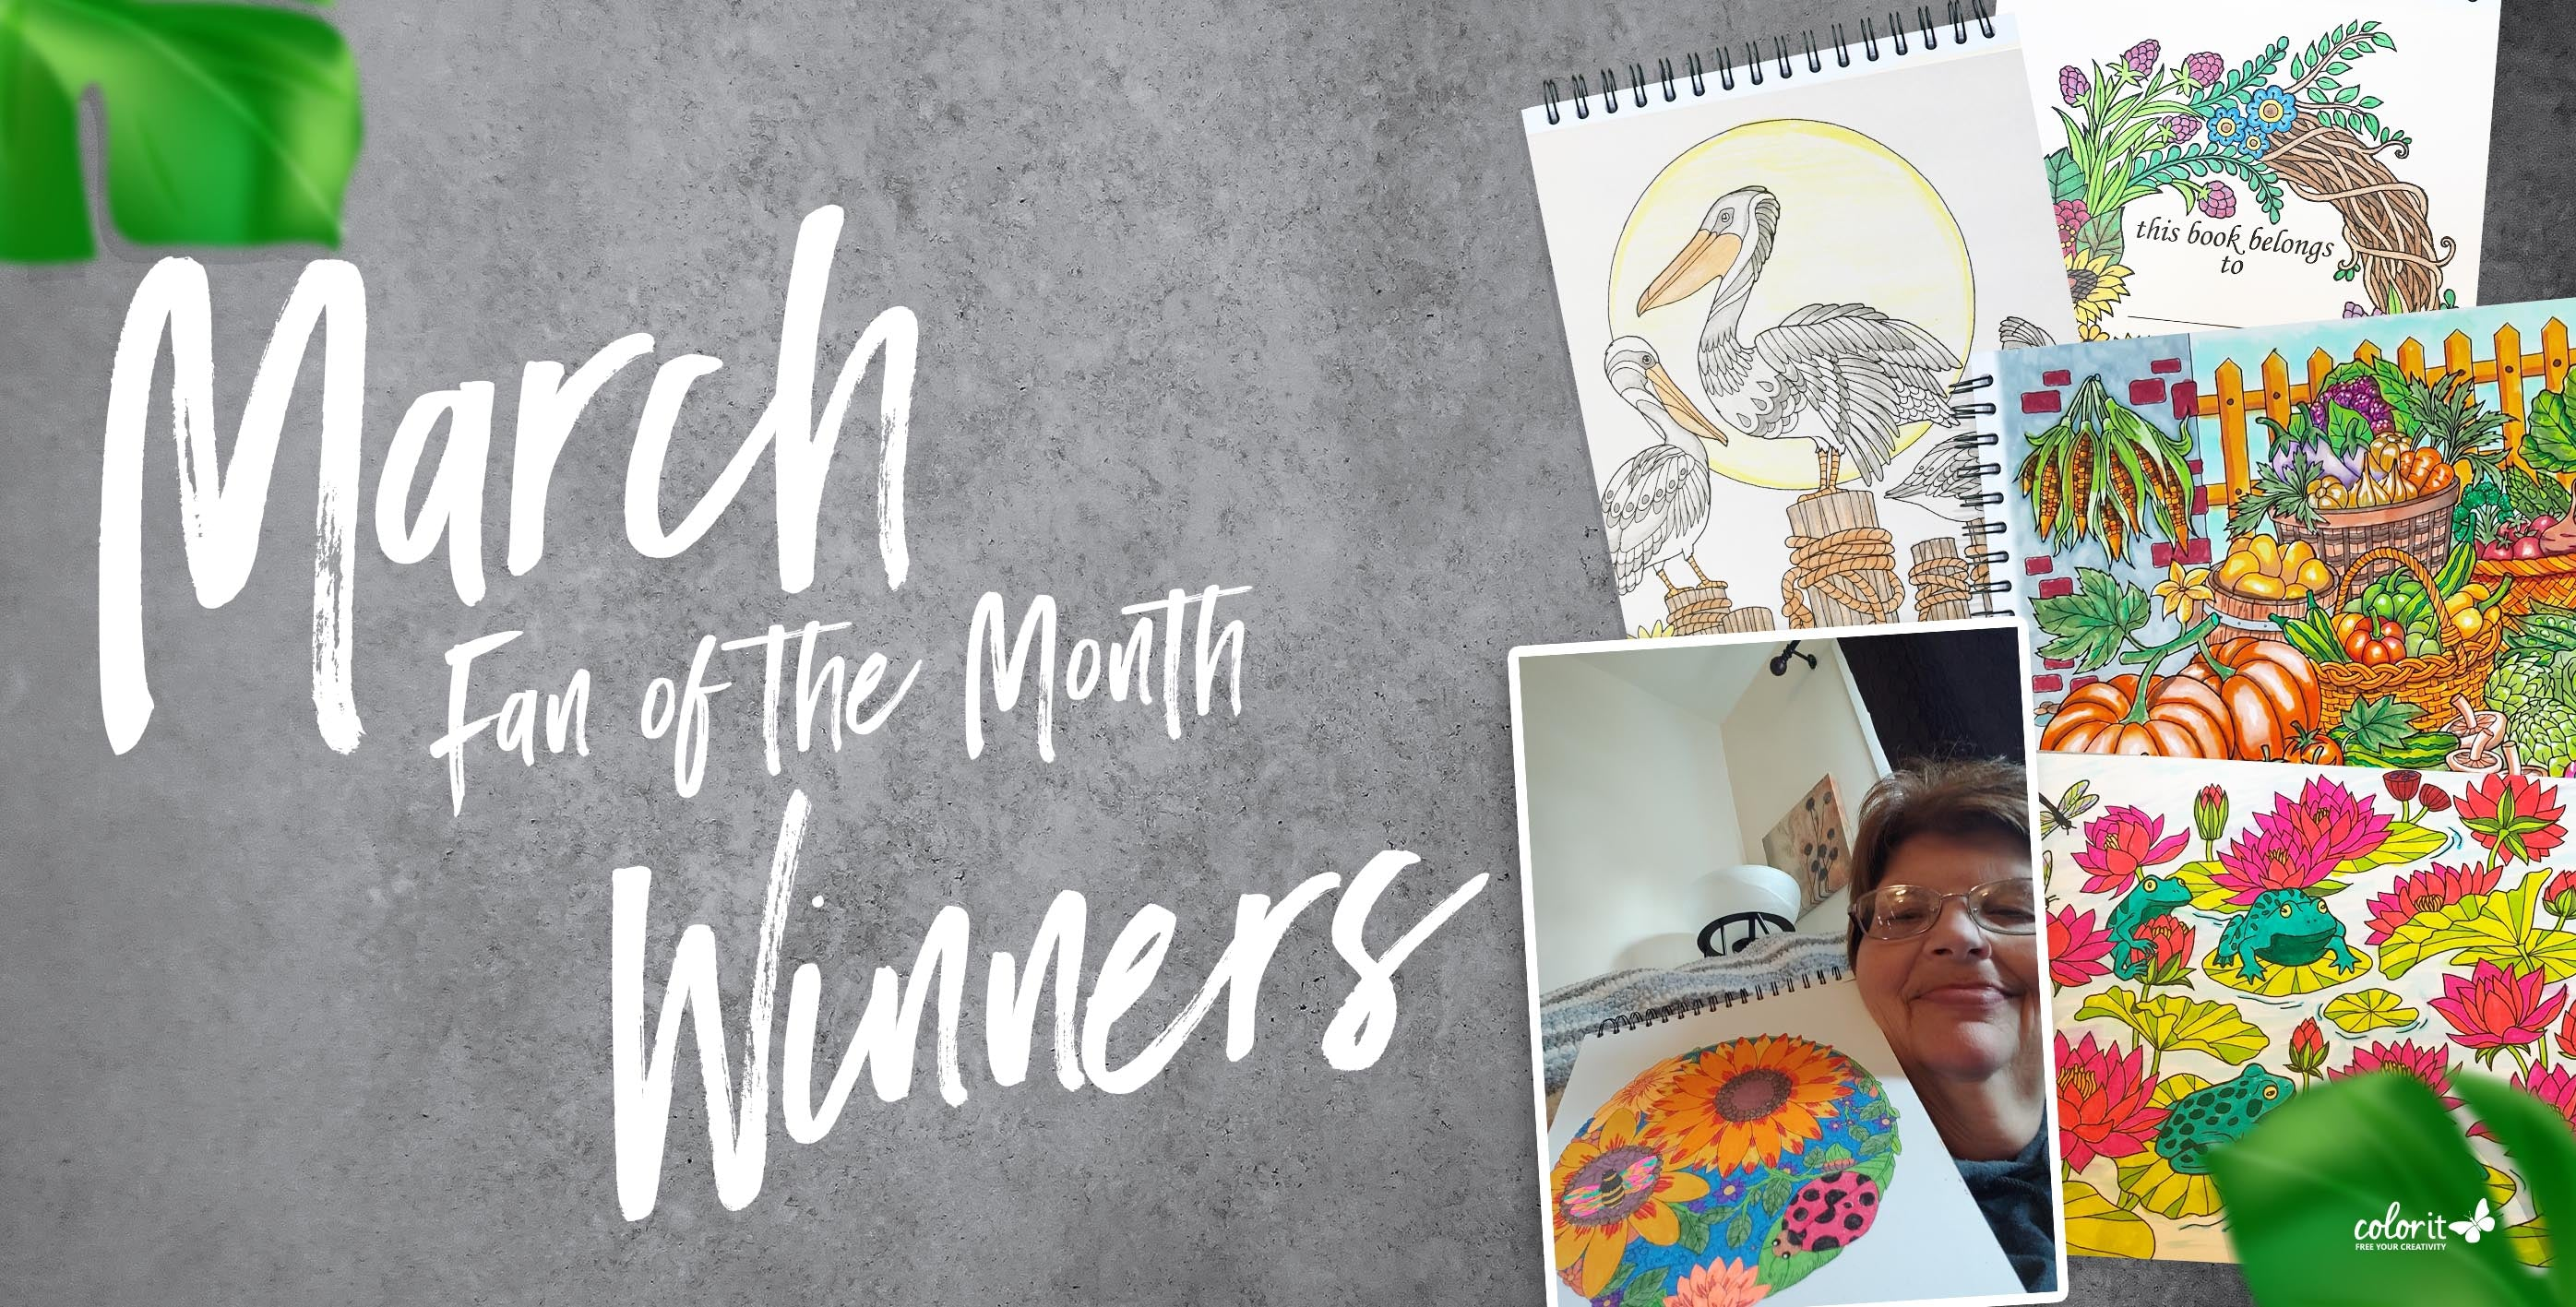 March 2020 Fan of the Month Winners